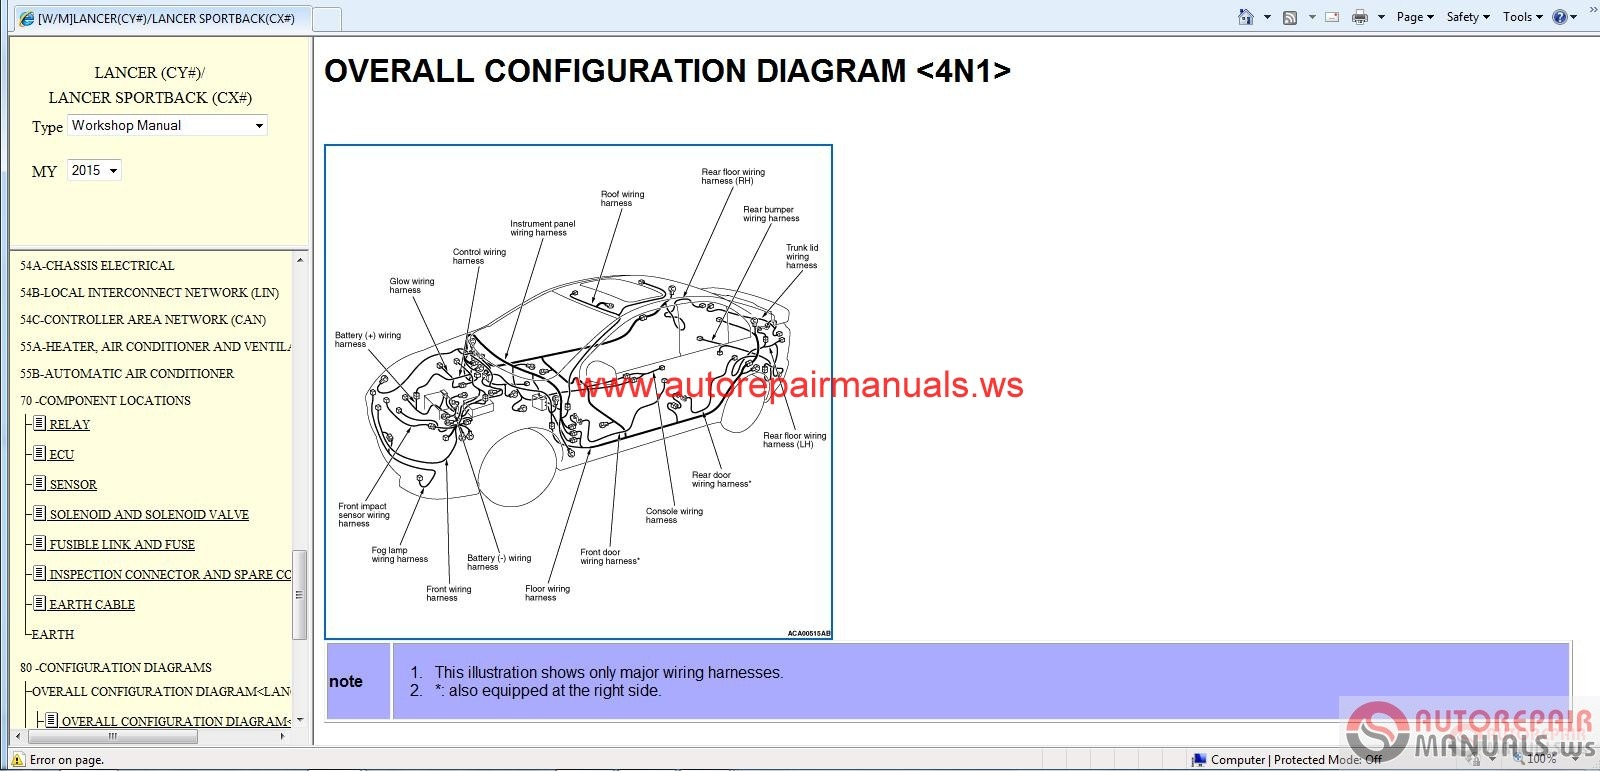 556 Ic One Pin Wiring Diagrams furthermore 9338 1 besides 2 besides The Raspberry Pi Models And How To Address Them likewise Ch7. on pinout diagrams